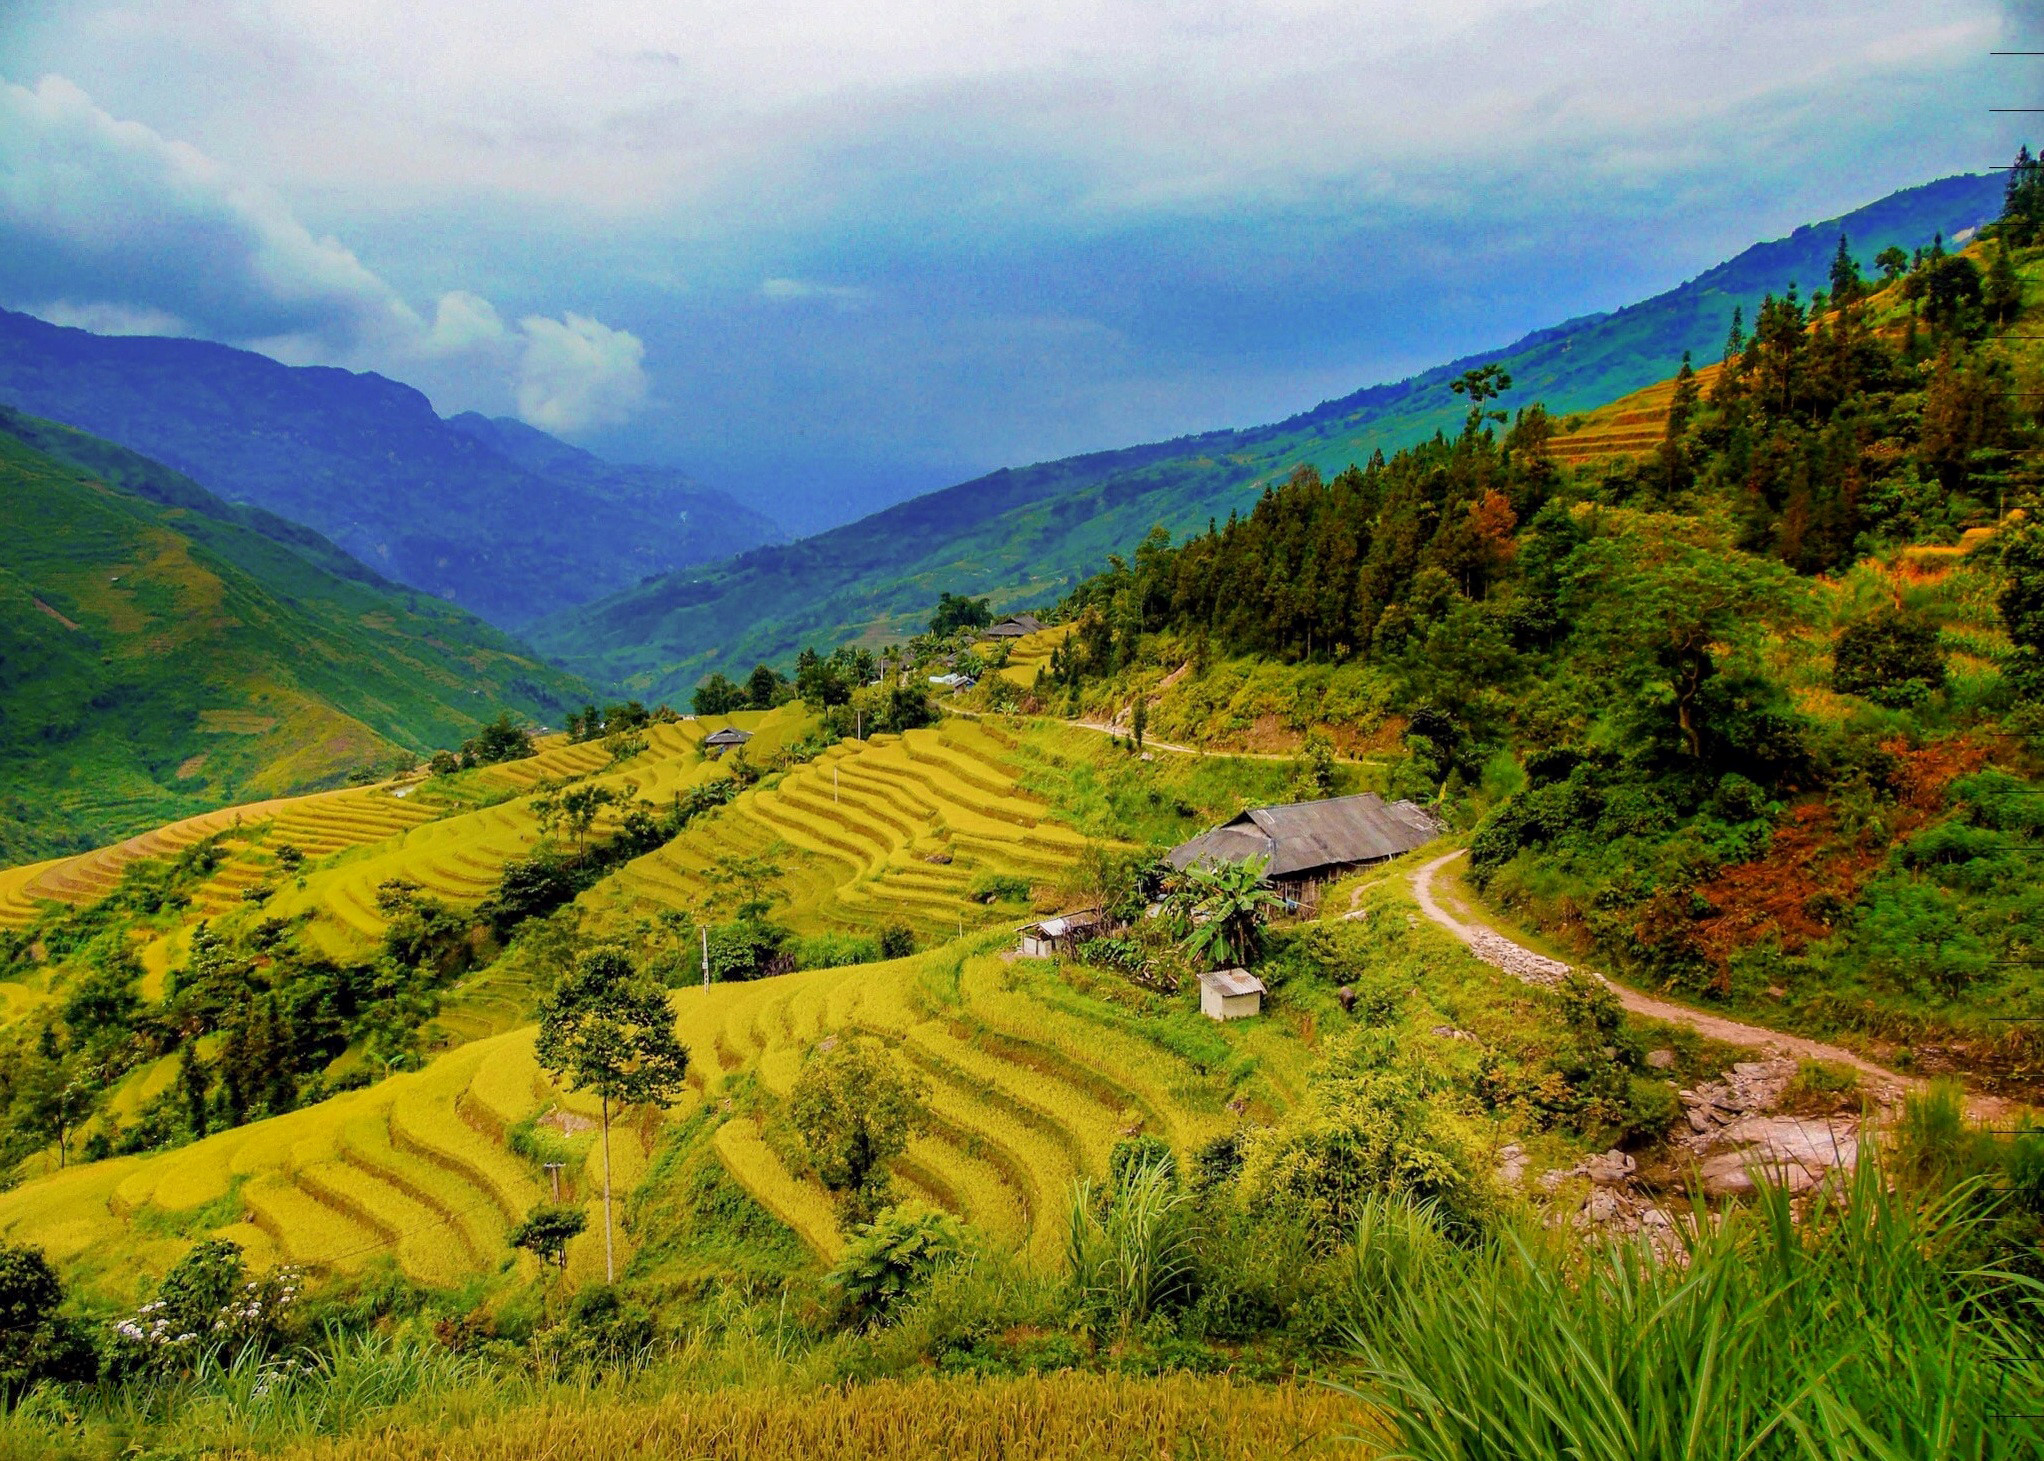 LÀO CAI rice terraces in vietnam with photos